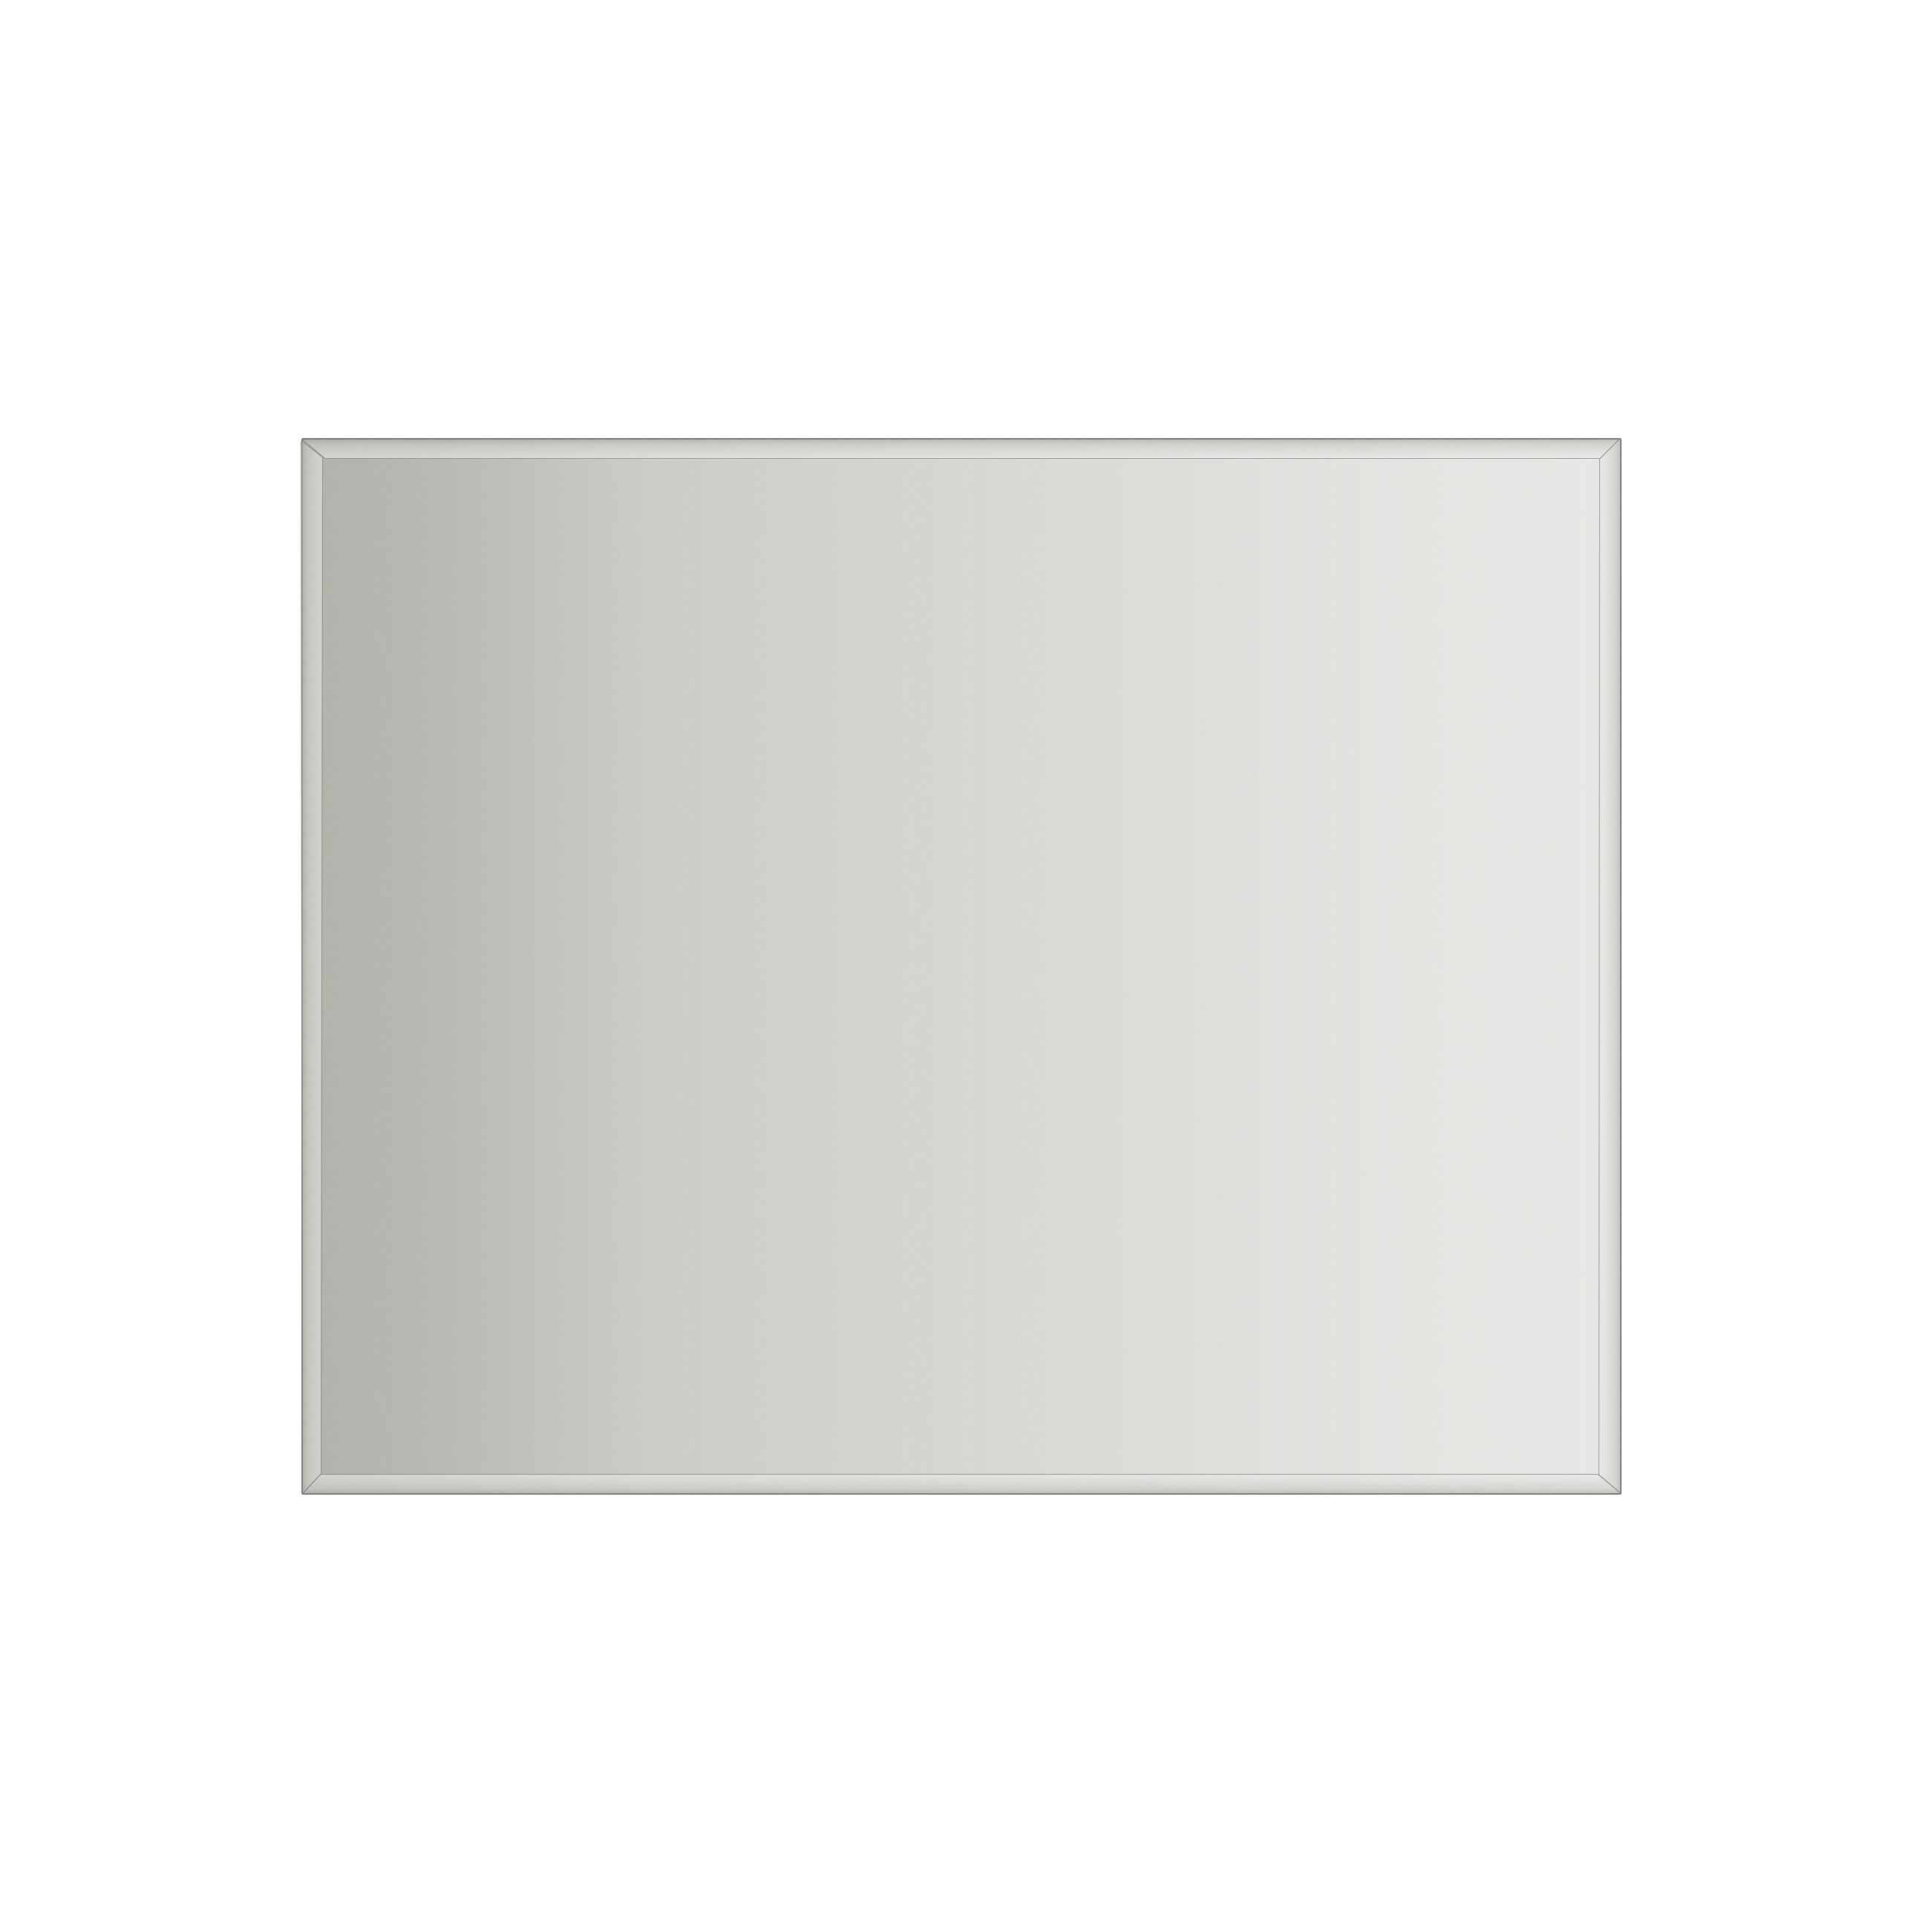 Reflekta Bevelled Edge Mirror 1500x1200mm Highgrove Bathrooms For Mirror Bevelled Edge (Image 12 of 15)